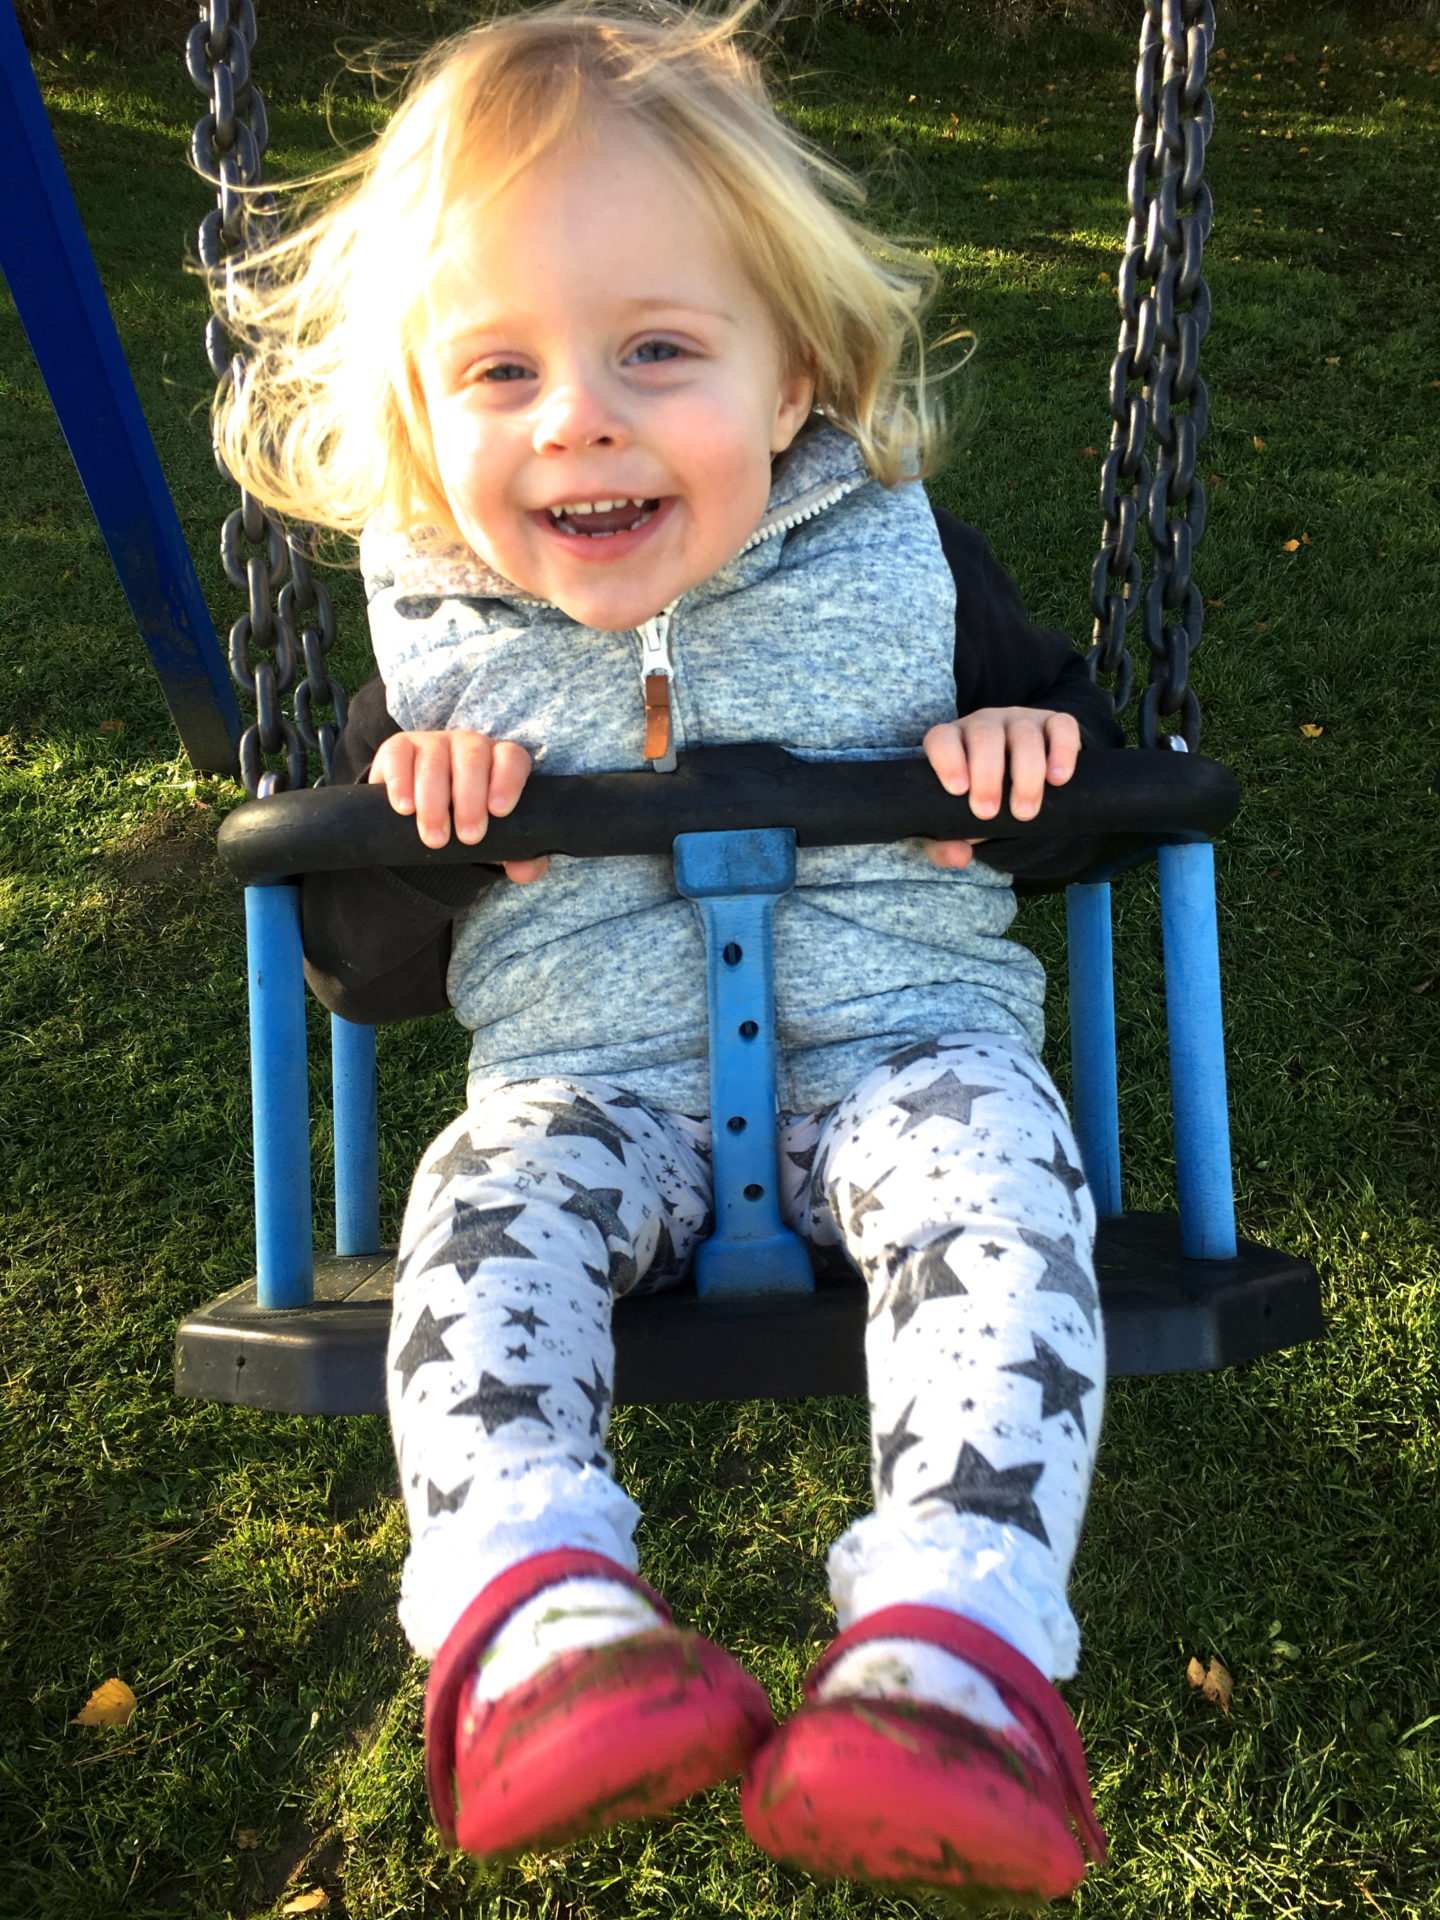 22 months old girl on a swing, smiling